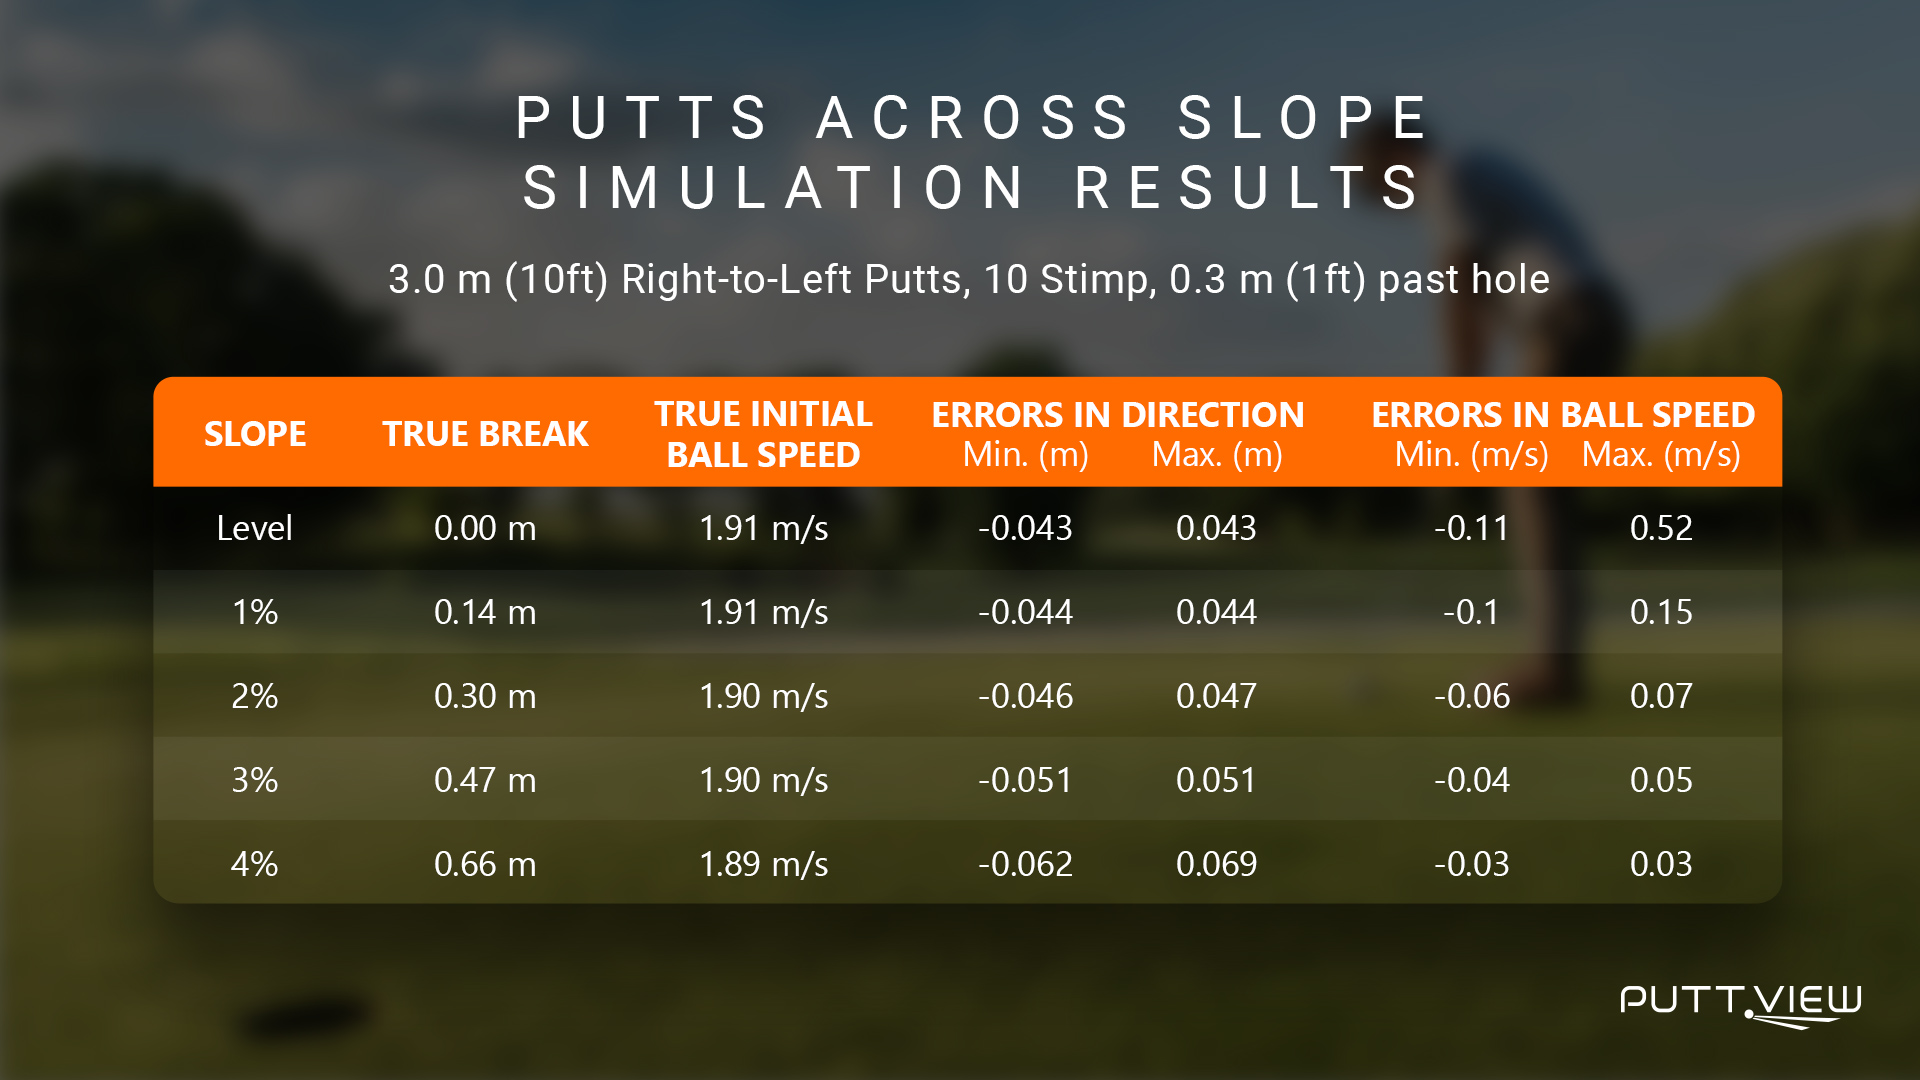 Stimpeter is the unit that green speed is measured. It is an international unit and if you know the stimpeter of the course you play on, it will help you get an understanding of different speed.